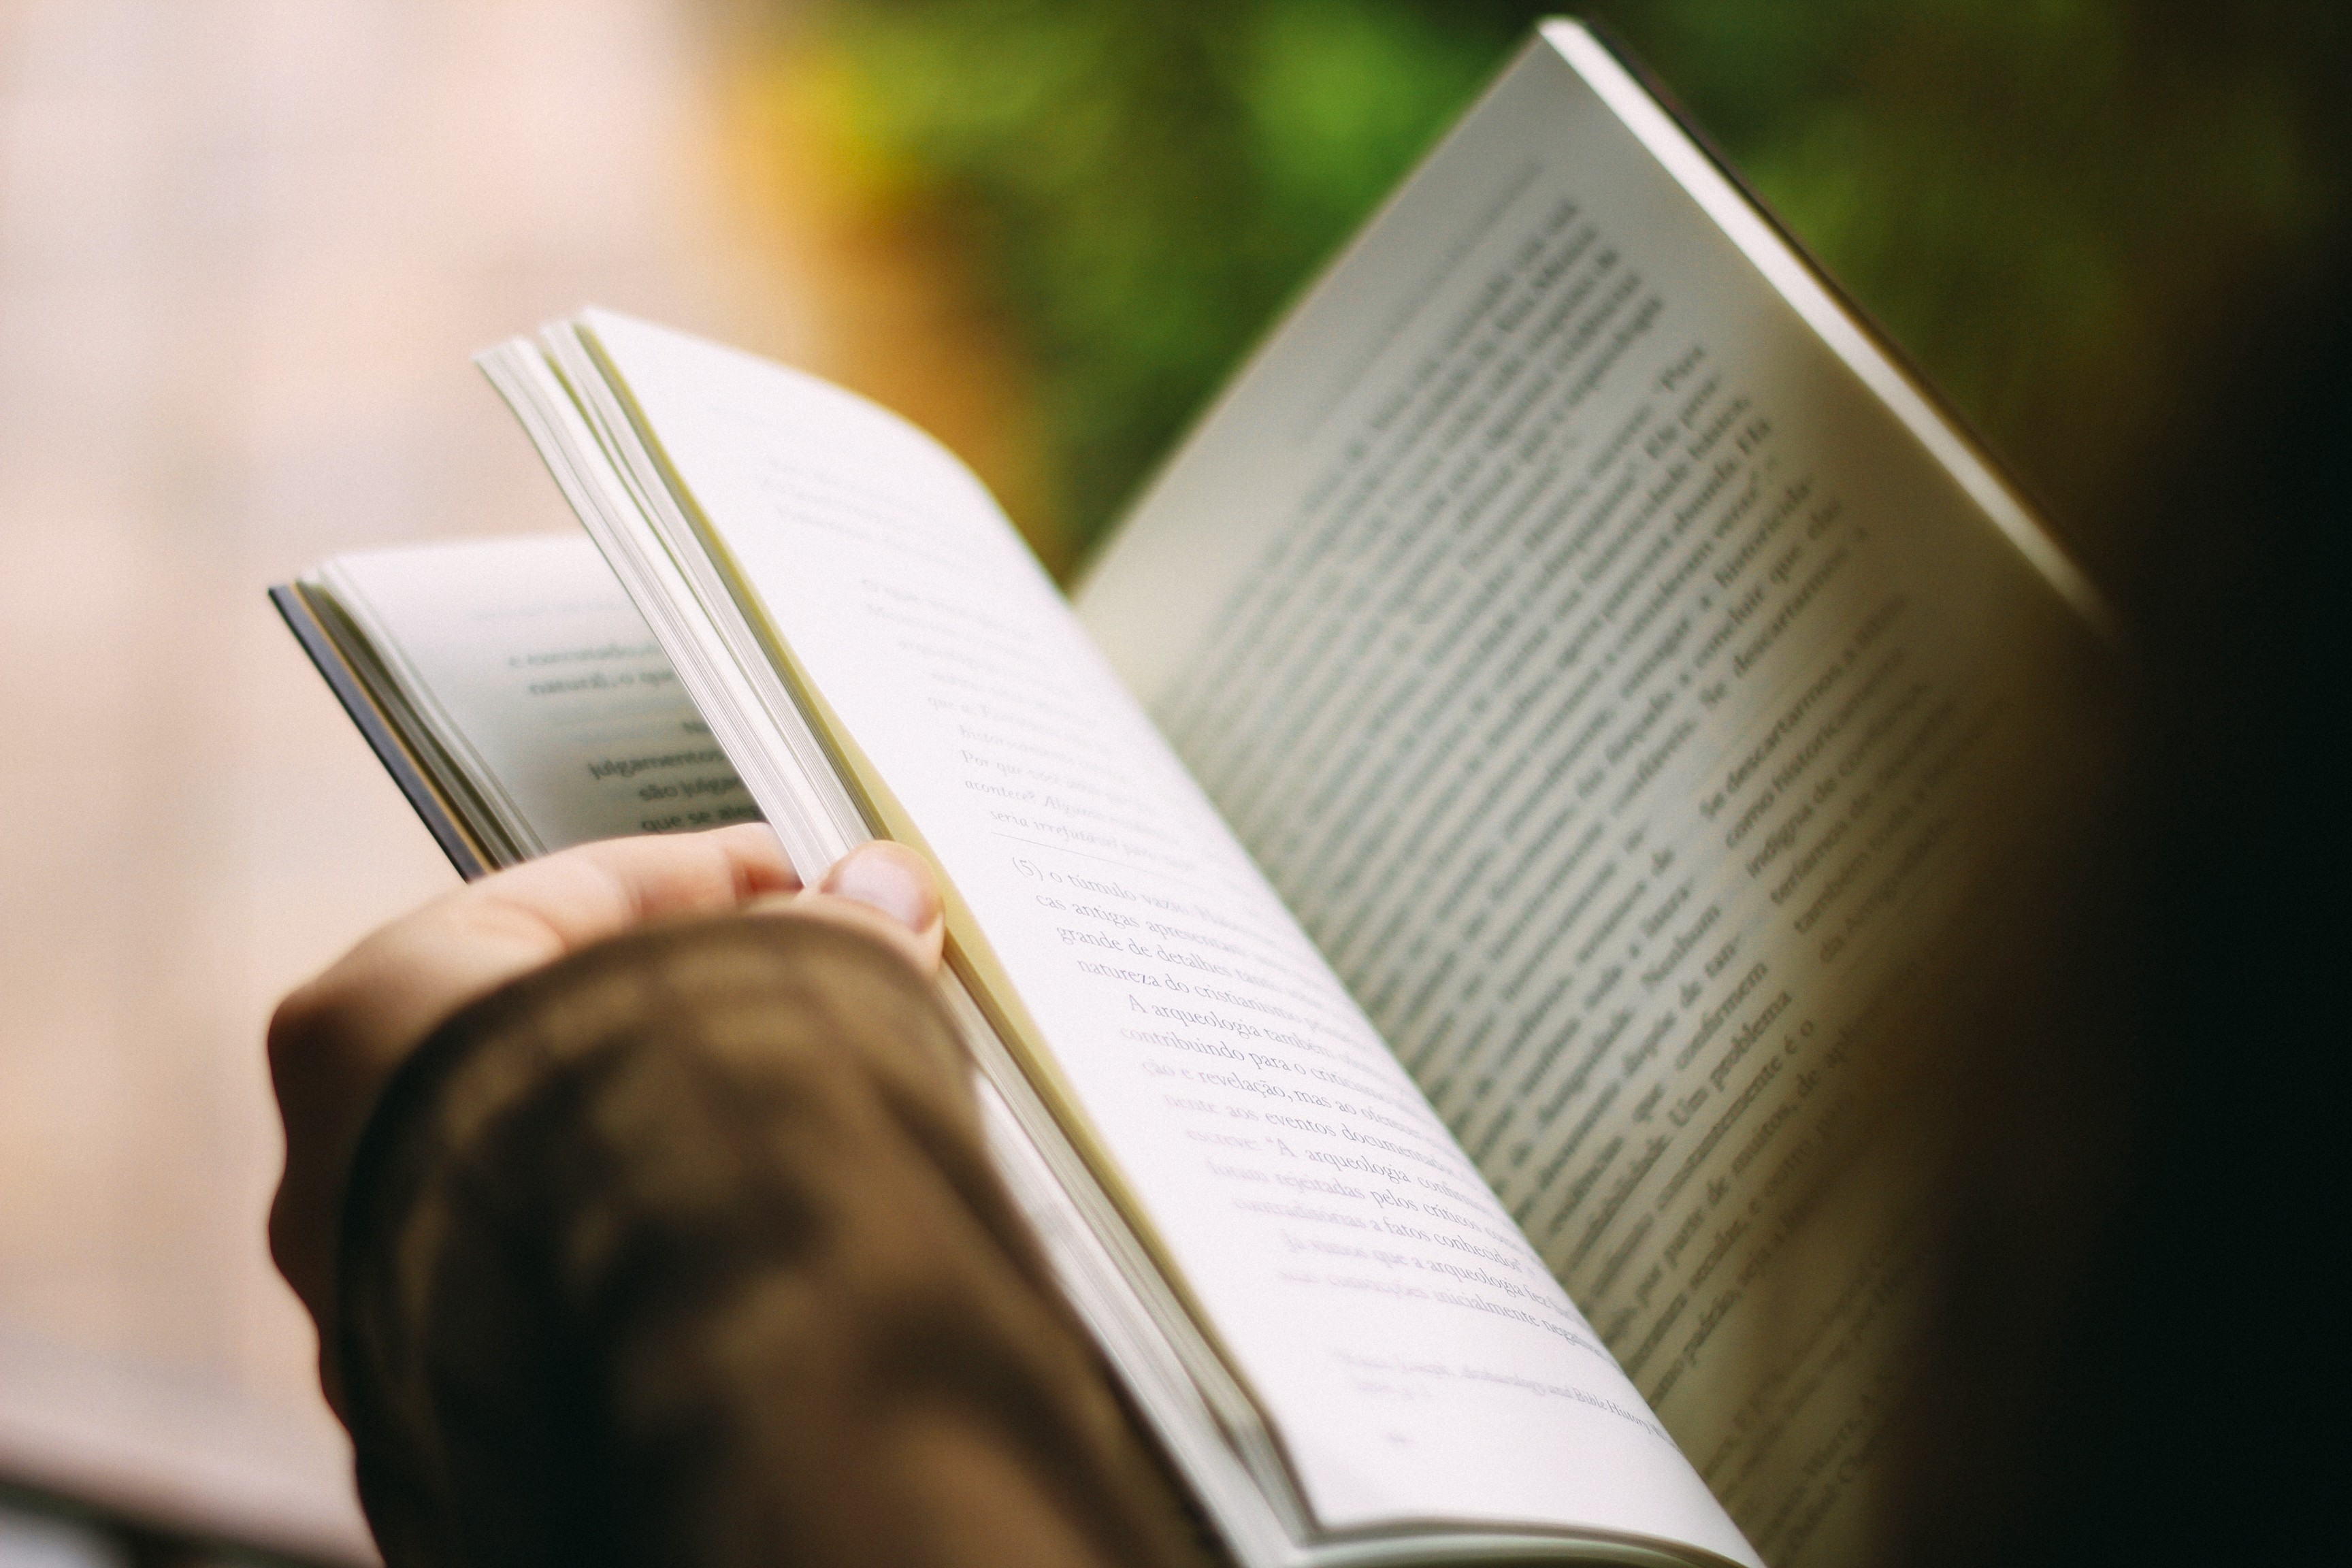 an open book with someone reading it